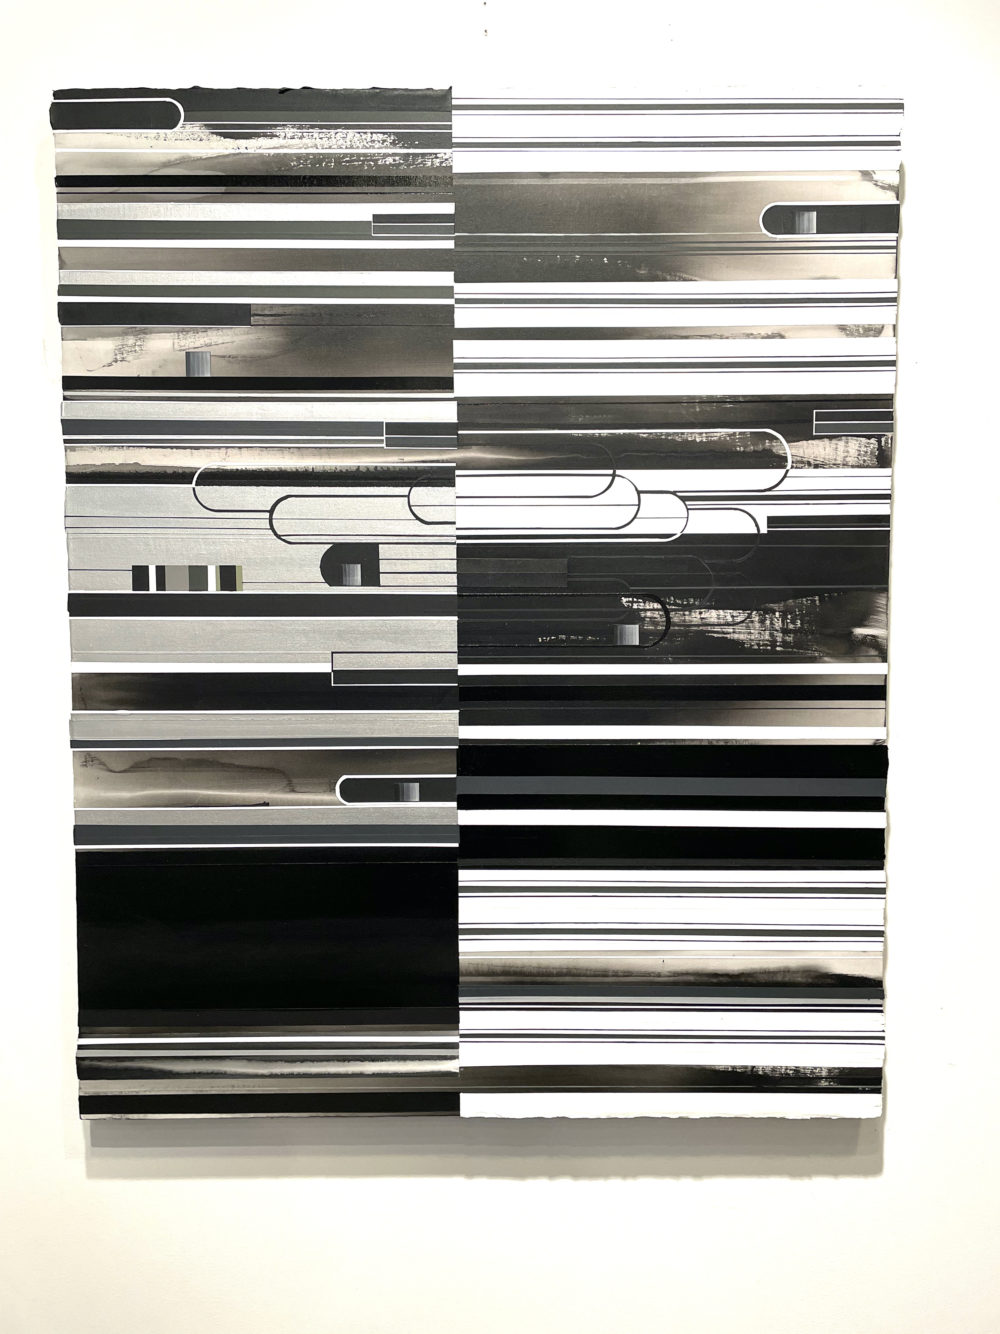 Abstract painting with horizontal bands of black, gray, and white.